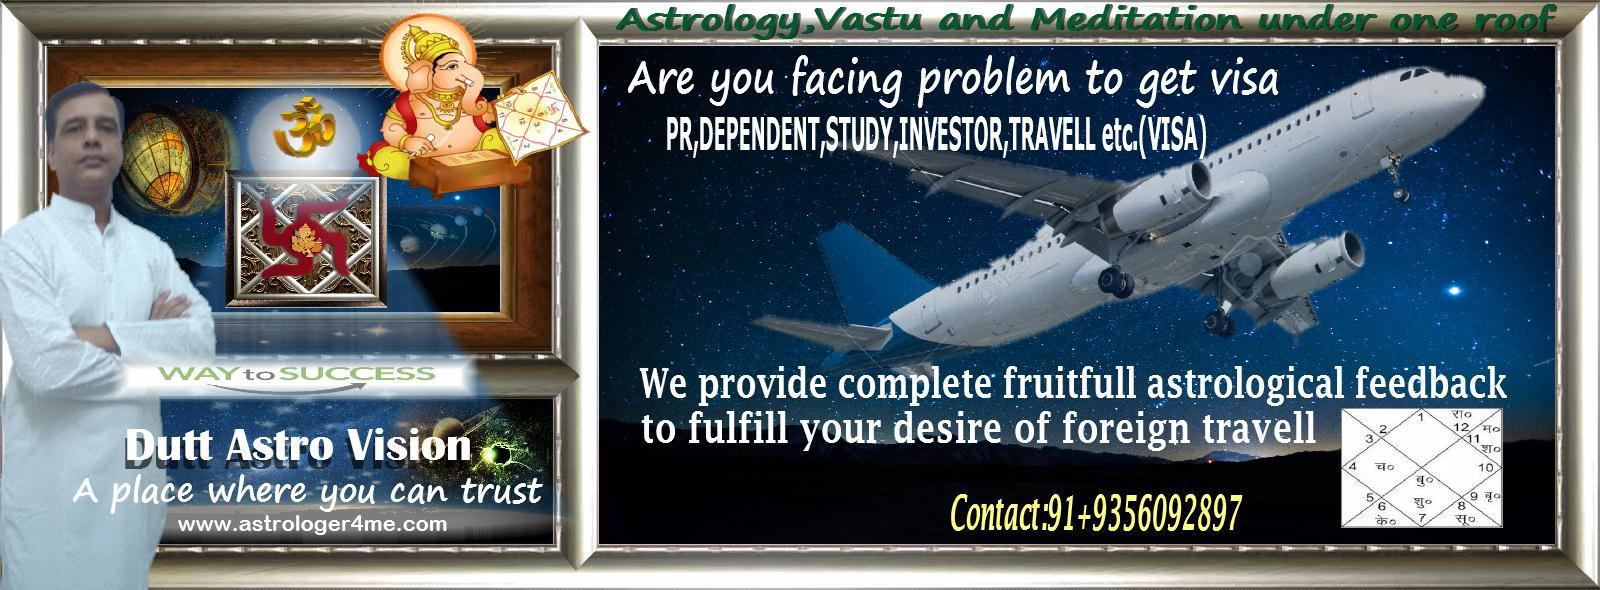 PR,DEPENDENT,STUDY,INVESTOR,TRAVELL etc.(visa) fulfil your desire of foreign travell with astrological feedback